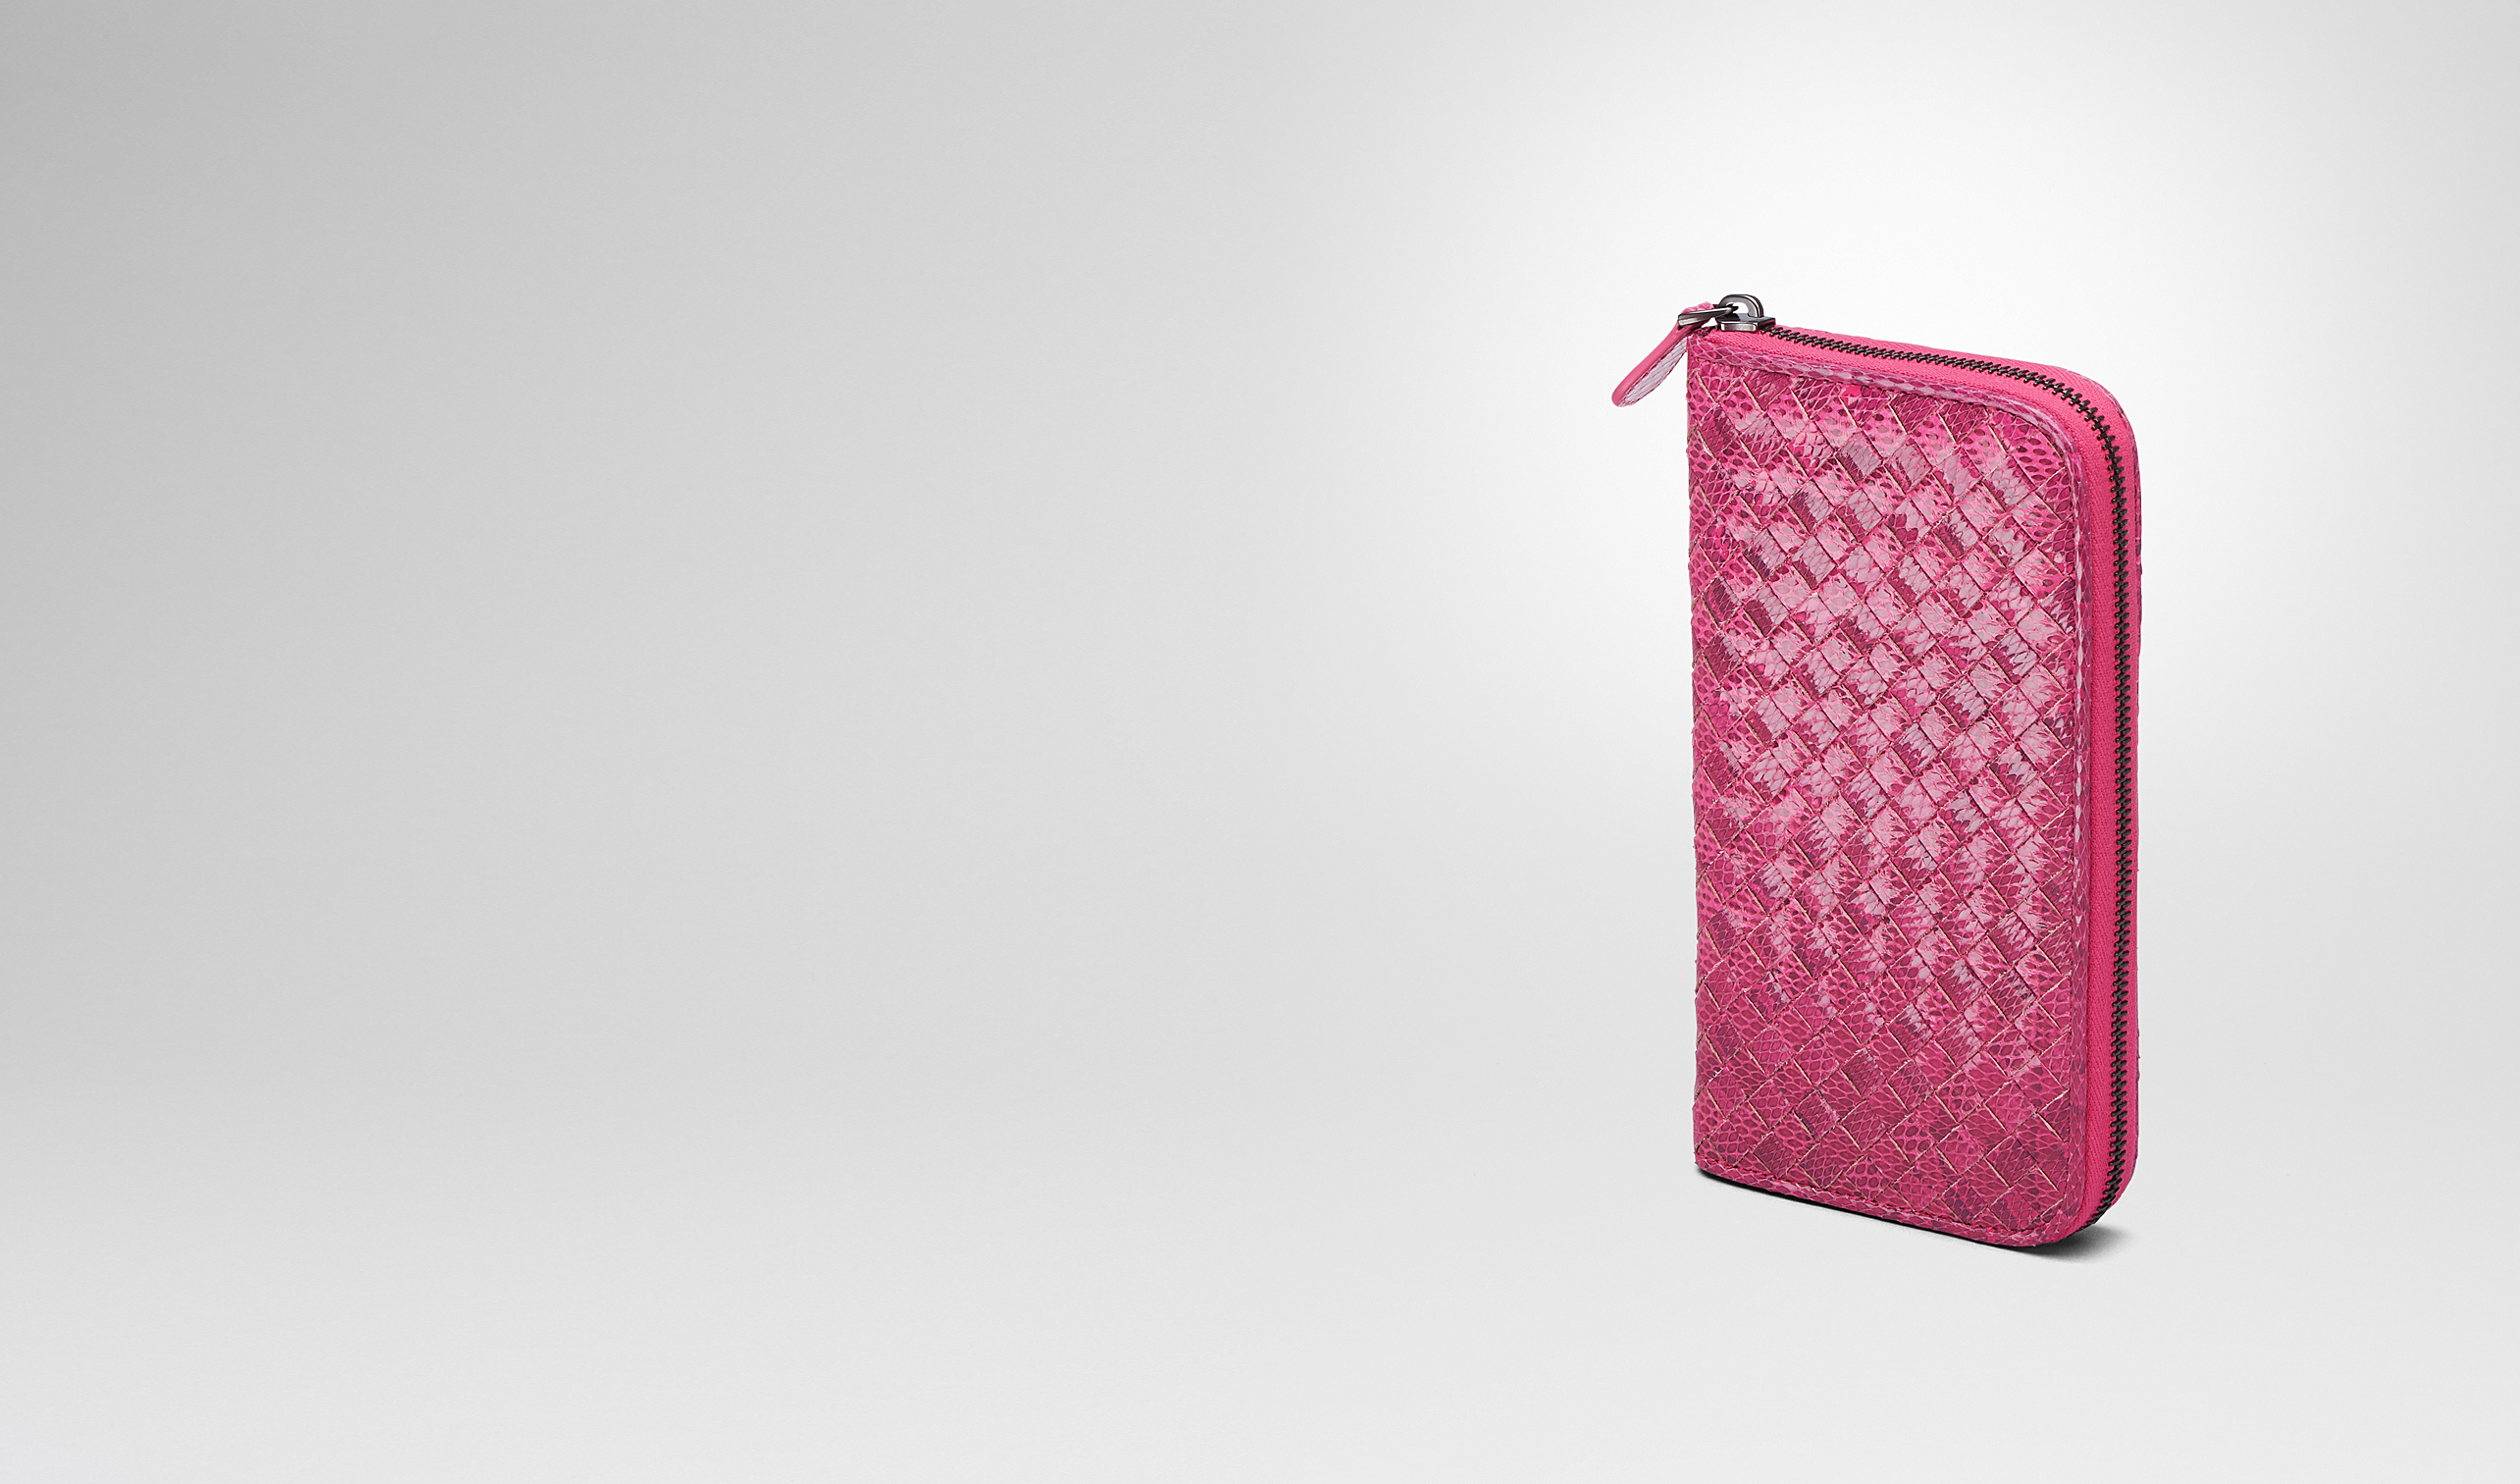 BOTTEGA VENETA Zip Around Wallet D ROSA SHOCK Intrecciato Ayers Livrea ZIP AROUND WALLET pl